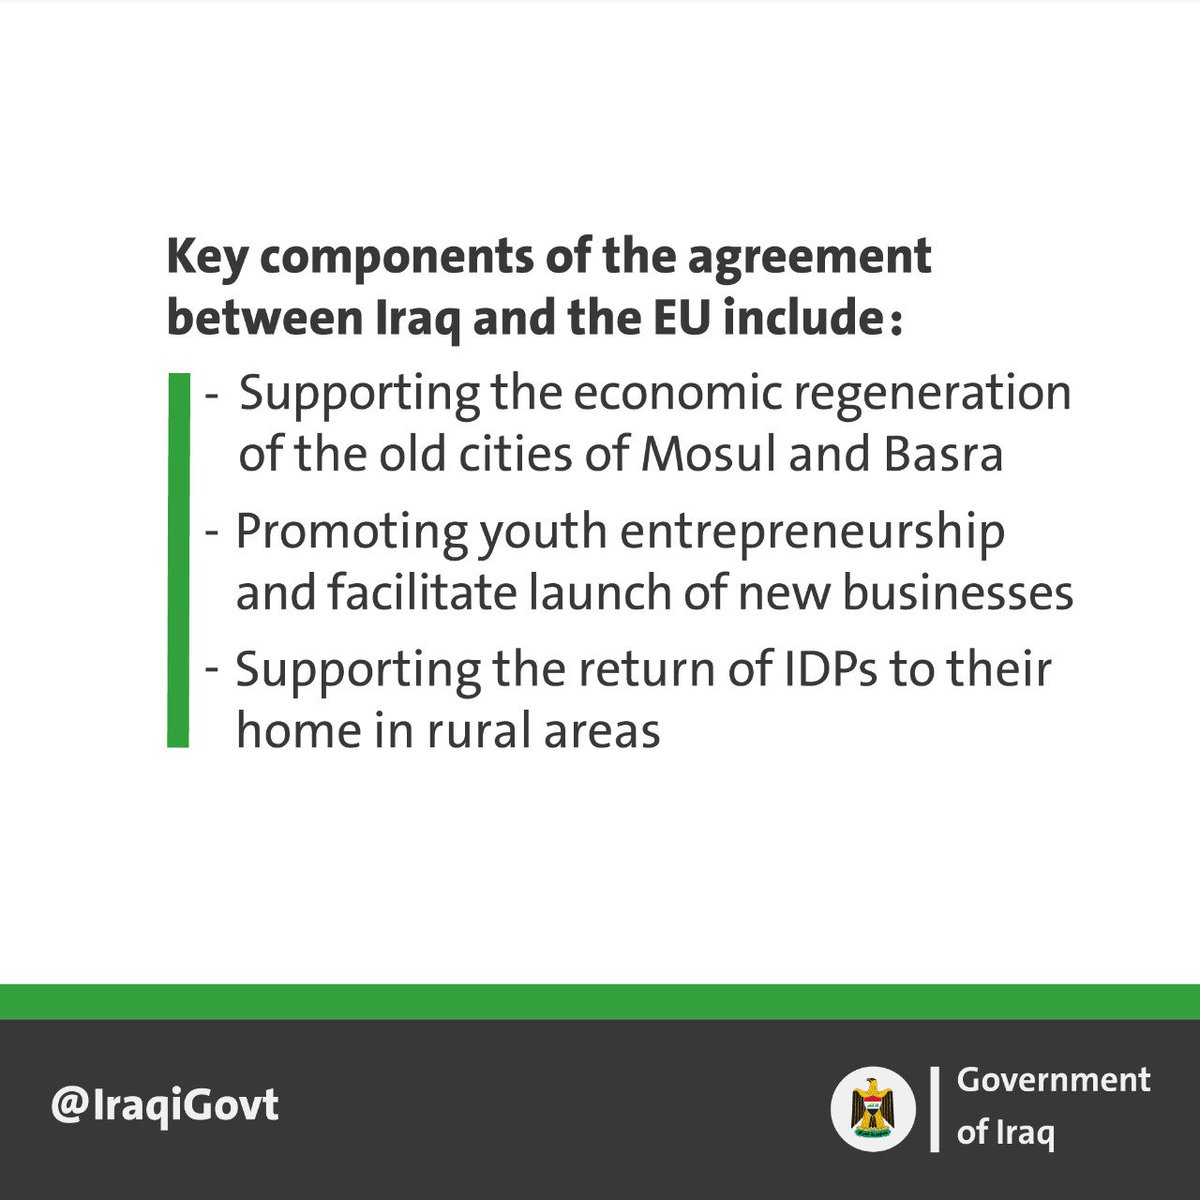 The @IraqiGovt signs finance agreement with @EU_Commission to support social and economic development in several regions of Iraq, in partnership with @UNESCO and @FAO. Working with the Iraqi people and international partners, we will build a sustainable and fair economy for all.